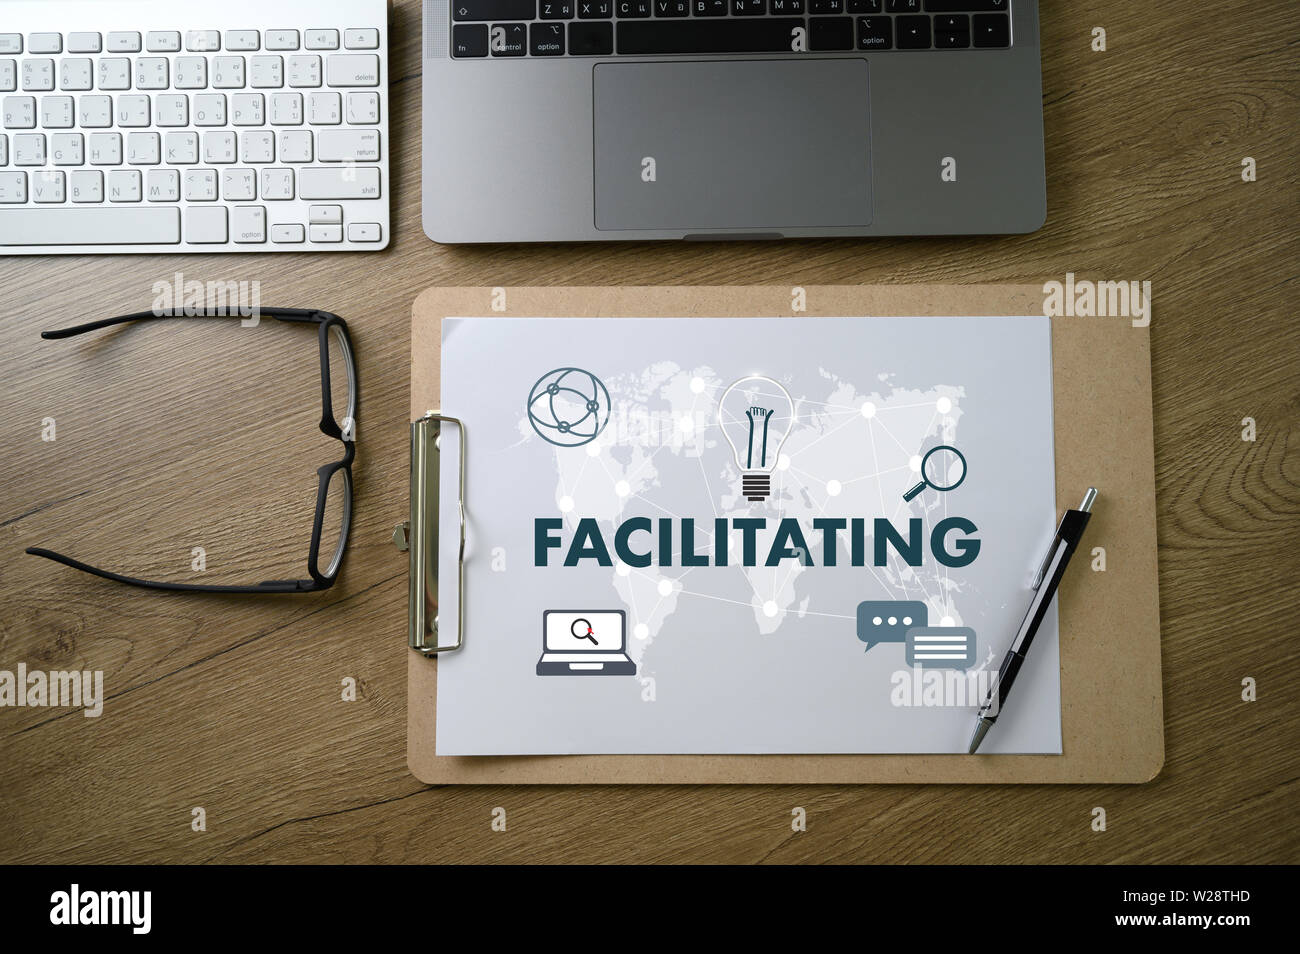 FACILITATING on table Facilitation secrets - Stock Image